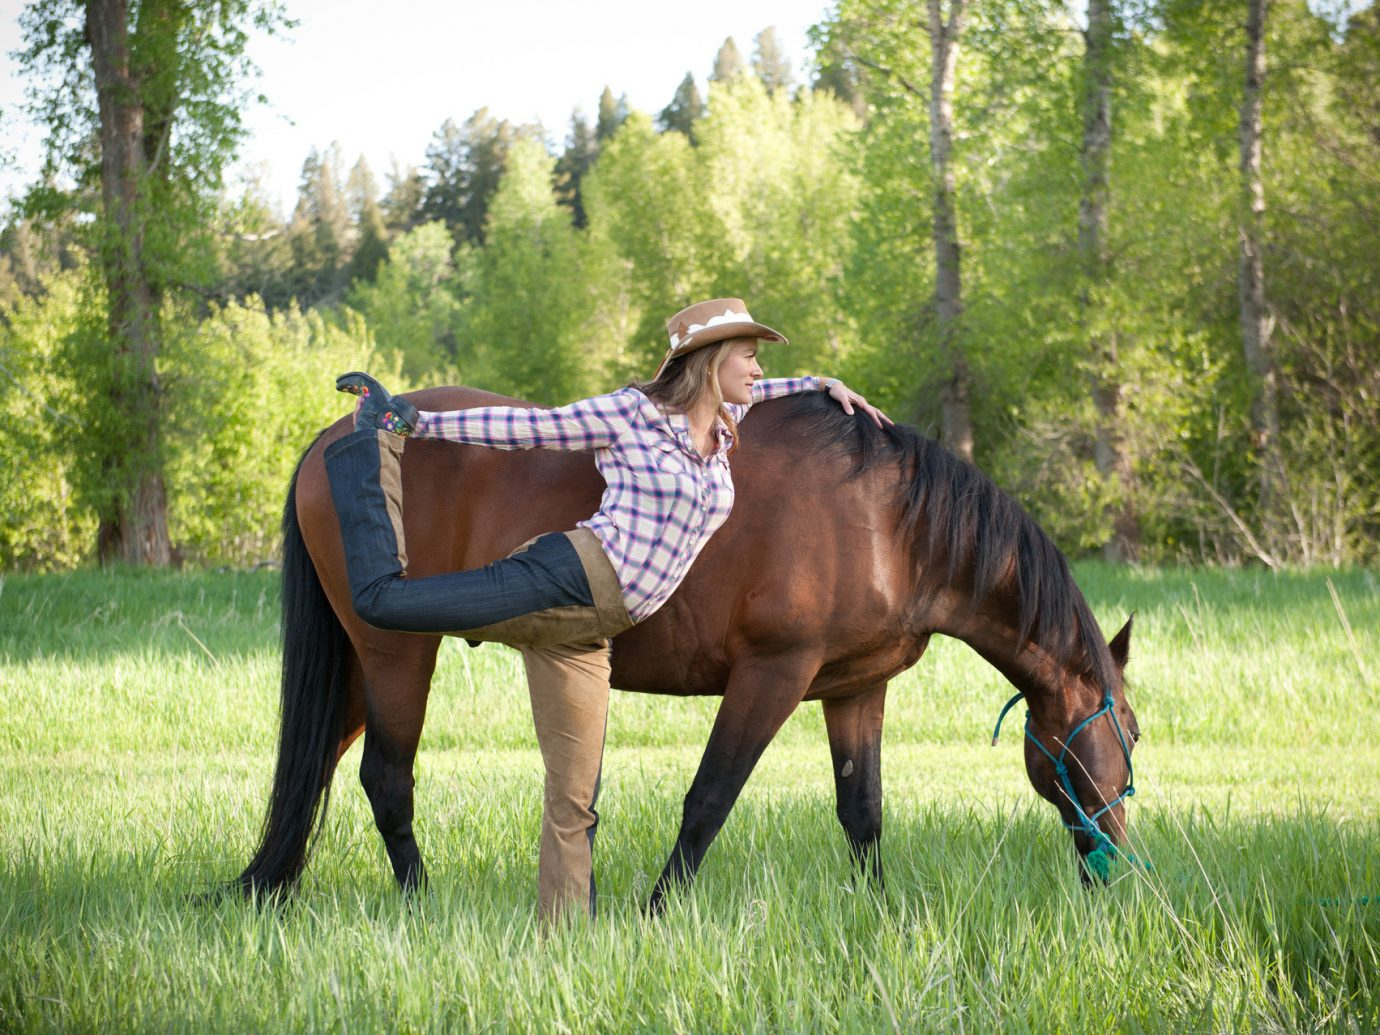 calm Country Countryside Greenery Health + Wellness horse horseback riding Meditation Retreats Nature Outdoor Activities Outdoors park remote serene Spa Retreats stretch trees Trip Ideas western woman yoga Yoga Retreats tree grass outdoor pasture mare trail riding animal endurance riding grazing grassland mammal brown stallion equestrianism mustang horse meadow horse like mammal pack animal prairie eventing Ranch lawn equestrian sport